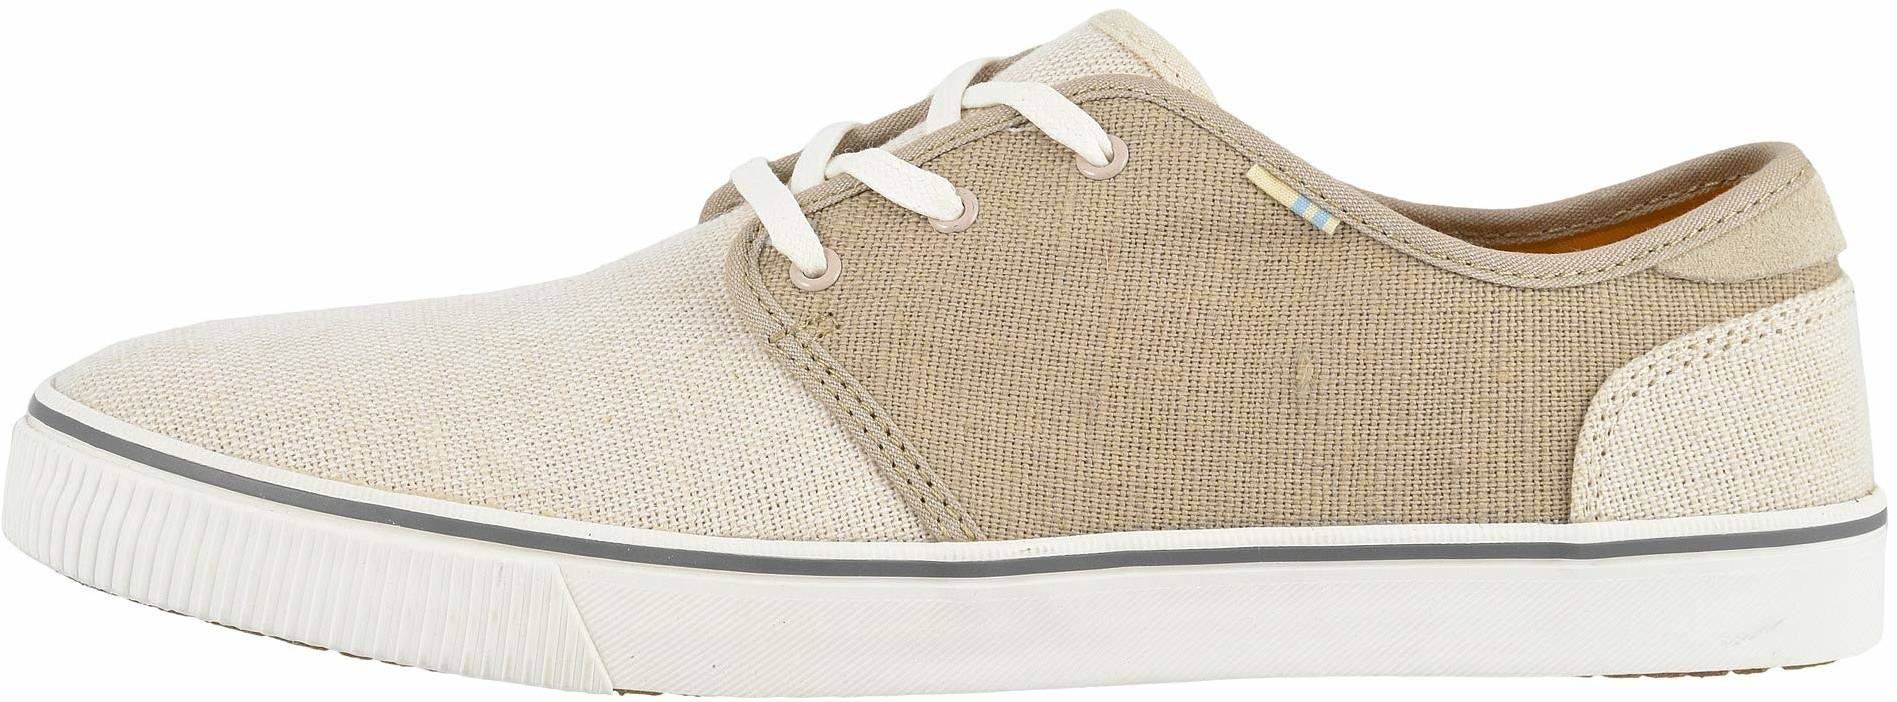 Only $18 + Review of TOMS Carlo | RunRepeat